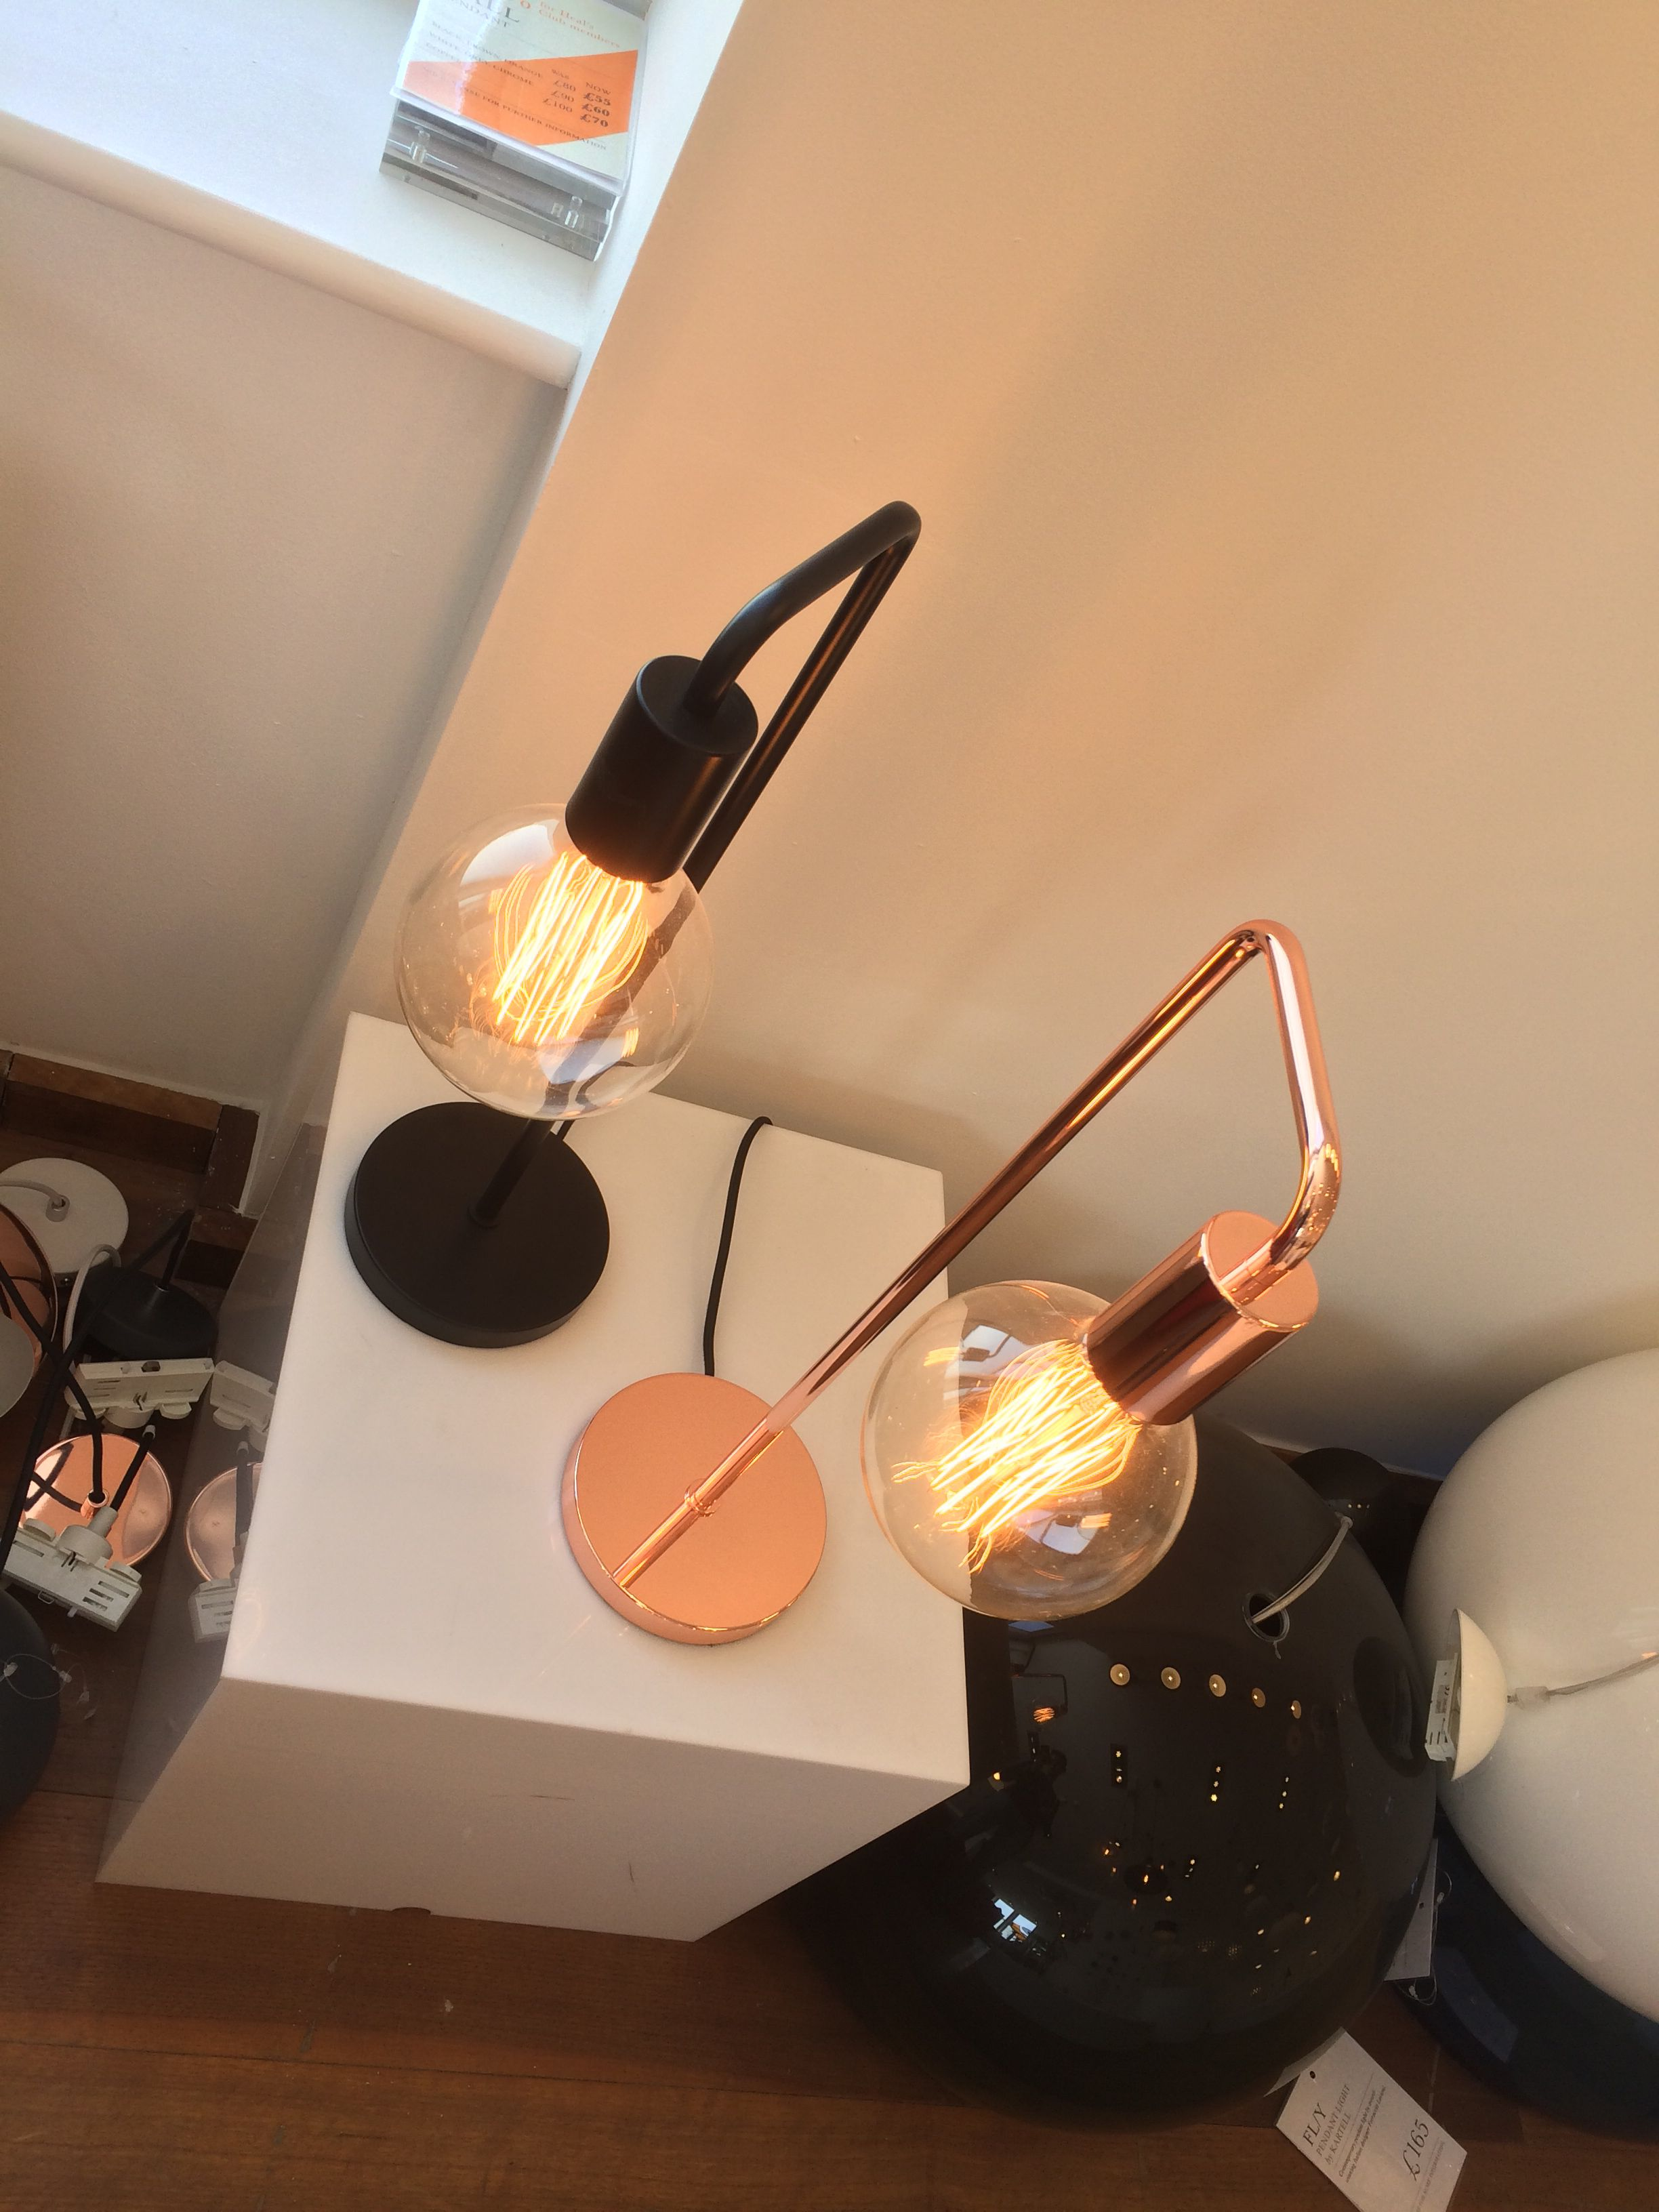 Lamps In Heals Desk Lamp Table Lamp Home Decor